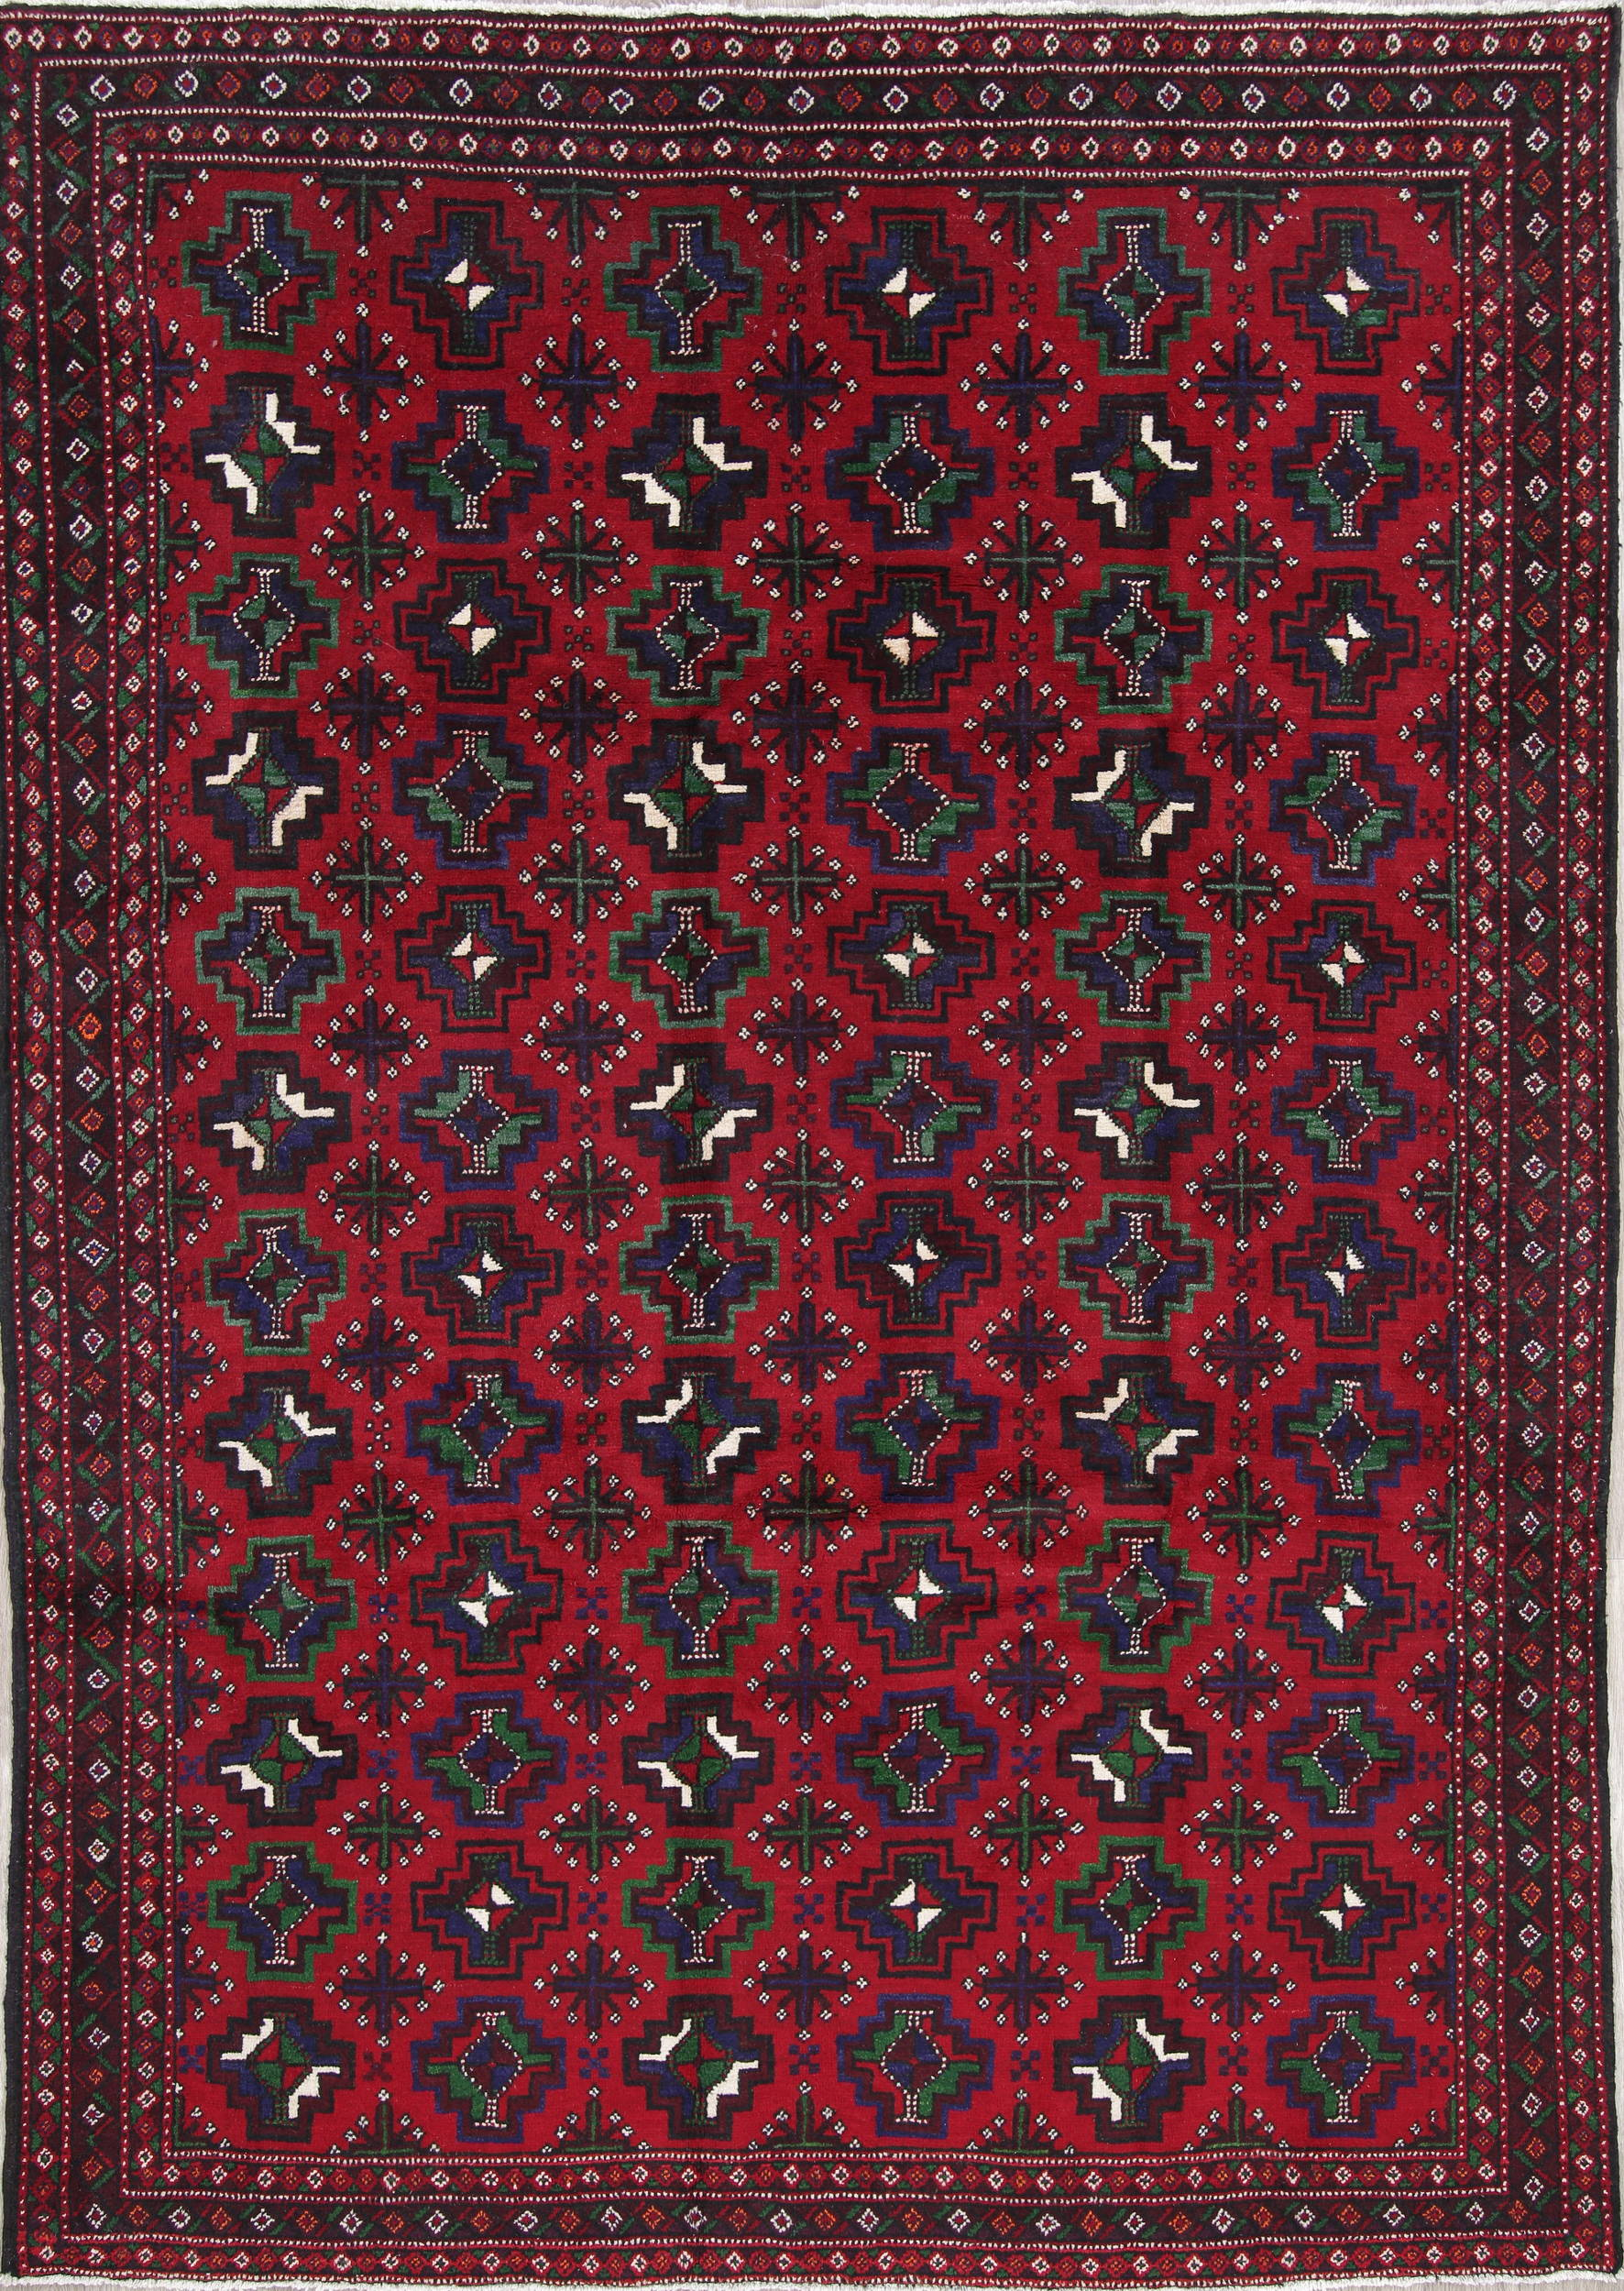 One-of-a-Kind Balouch Persian Hand-Knotted 7x10 Red Wool Area Rug